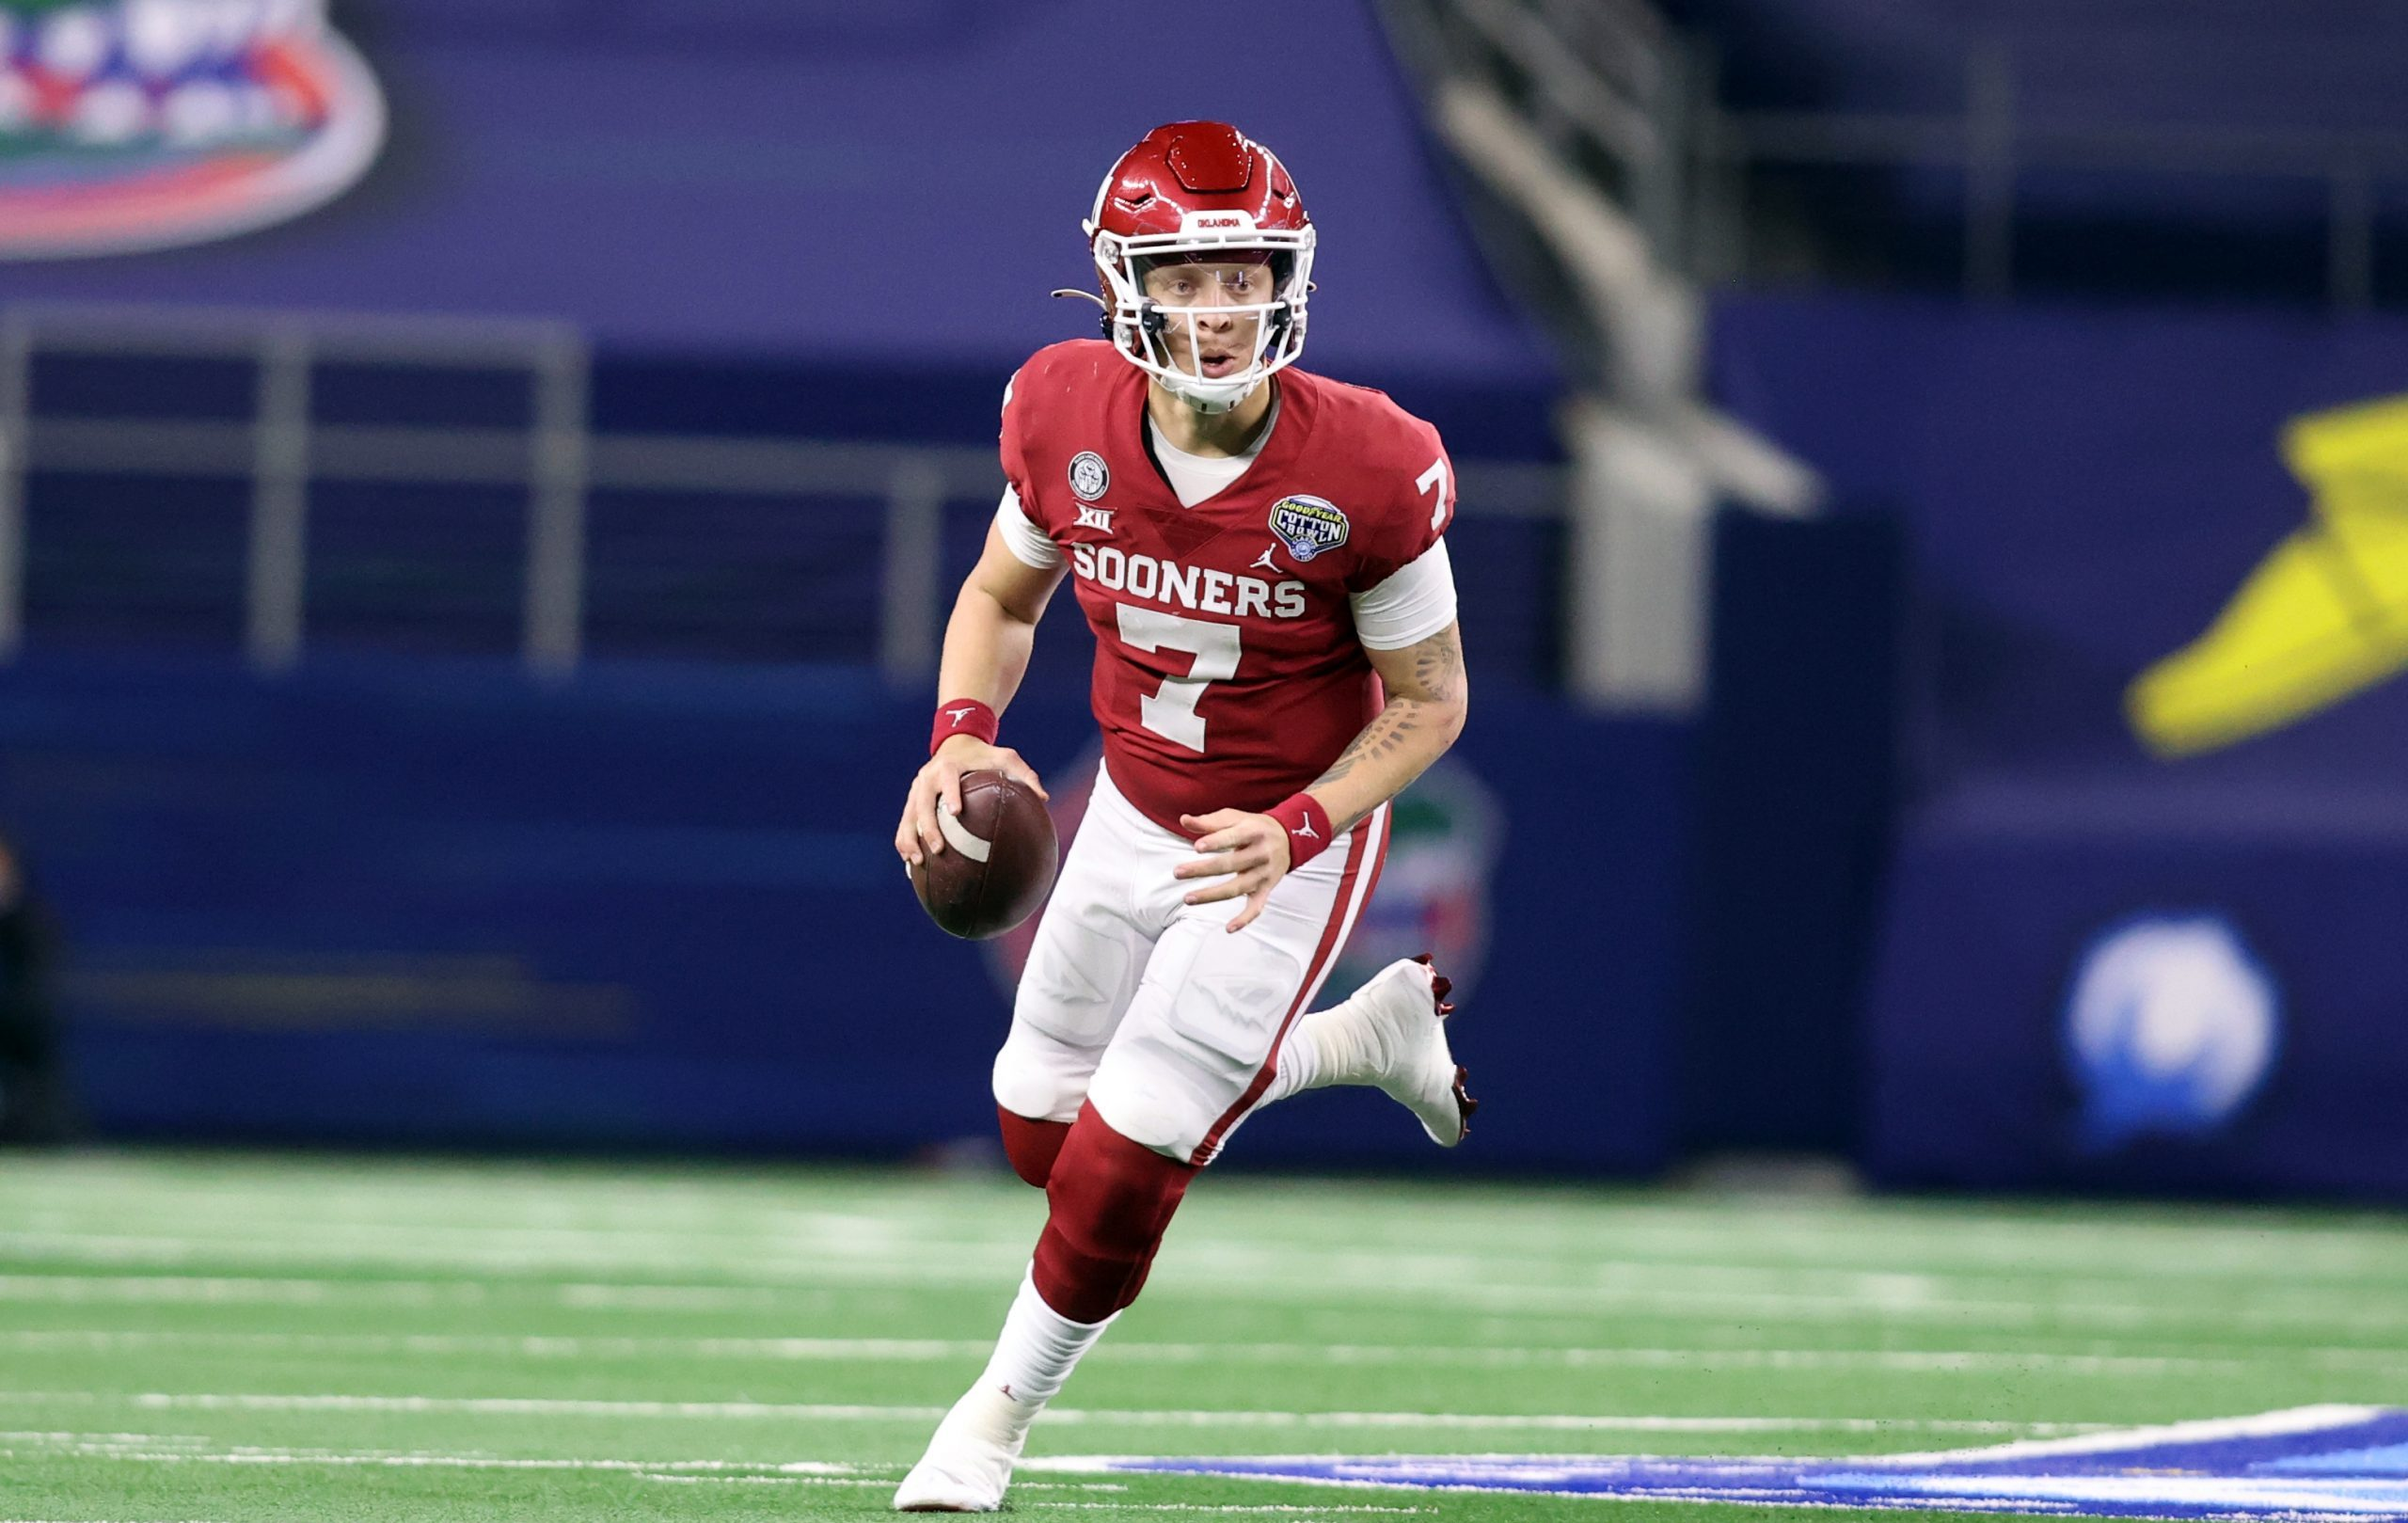 Early college football betting lines 2021 election is matched betting still profitable